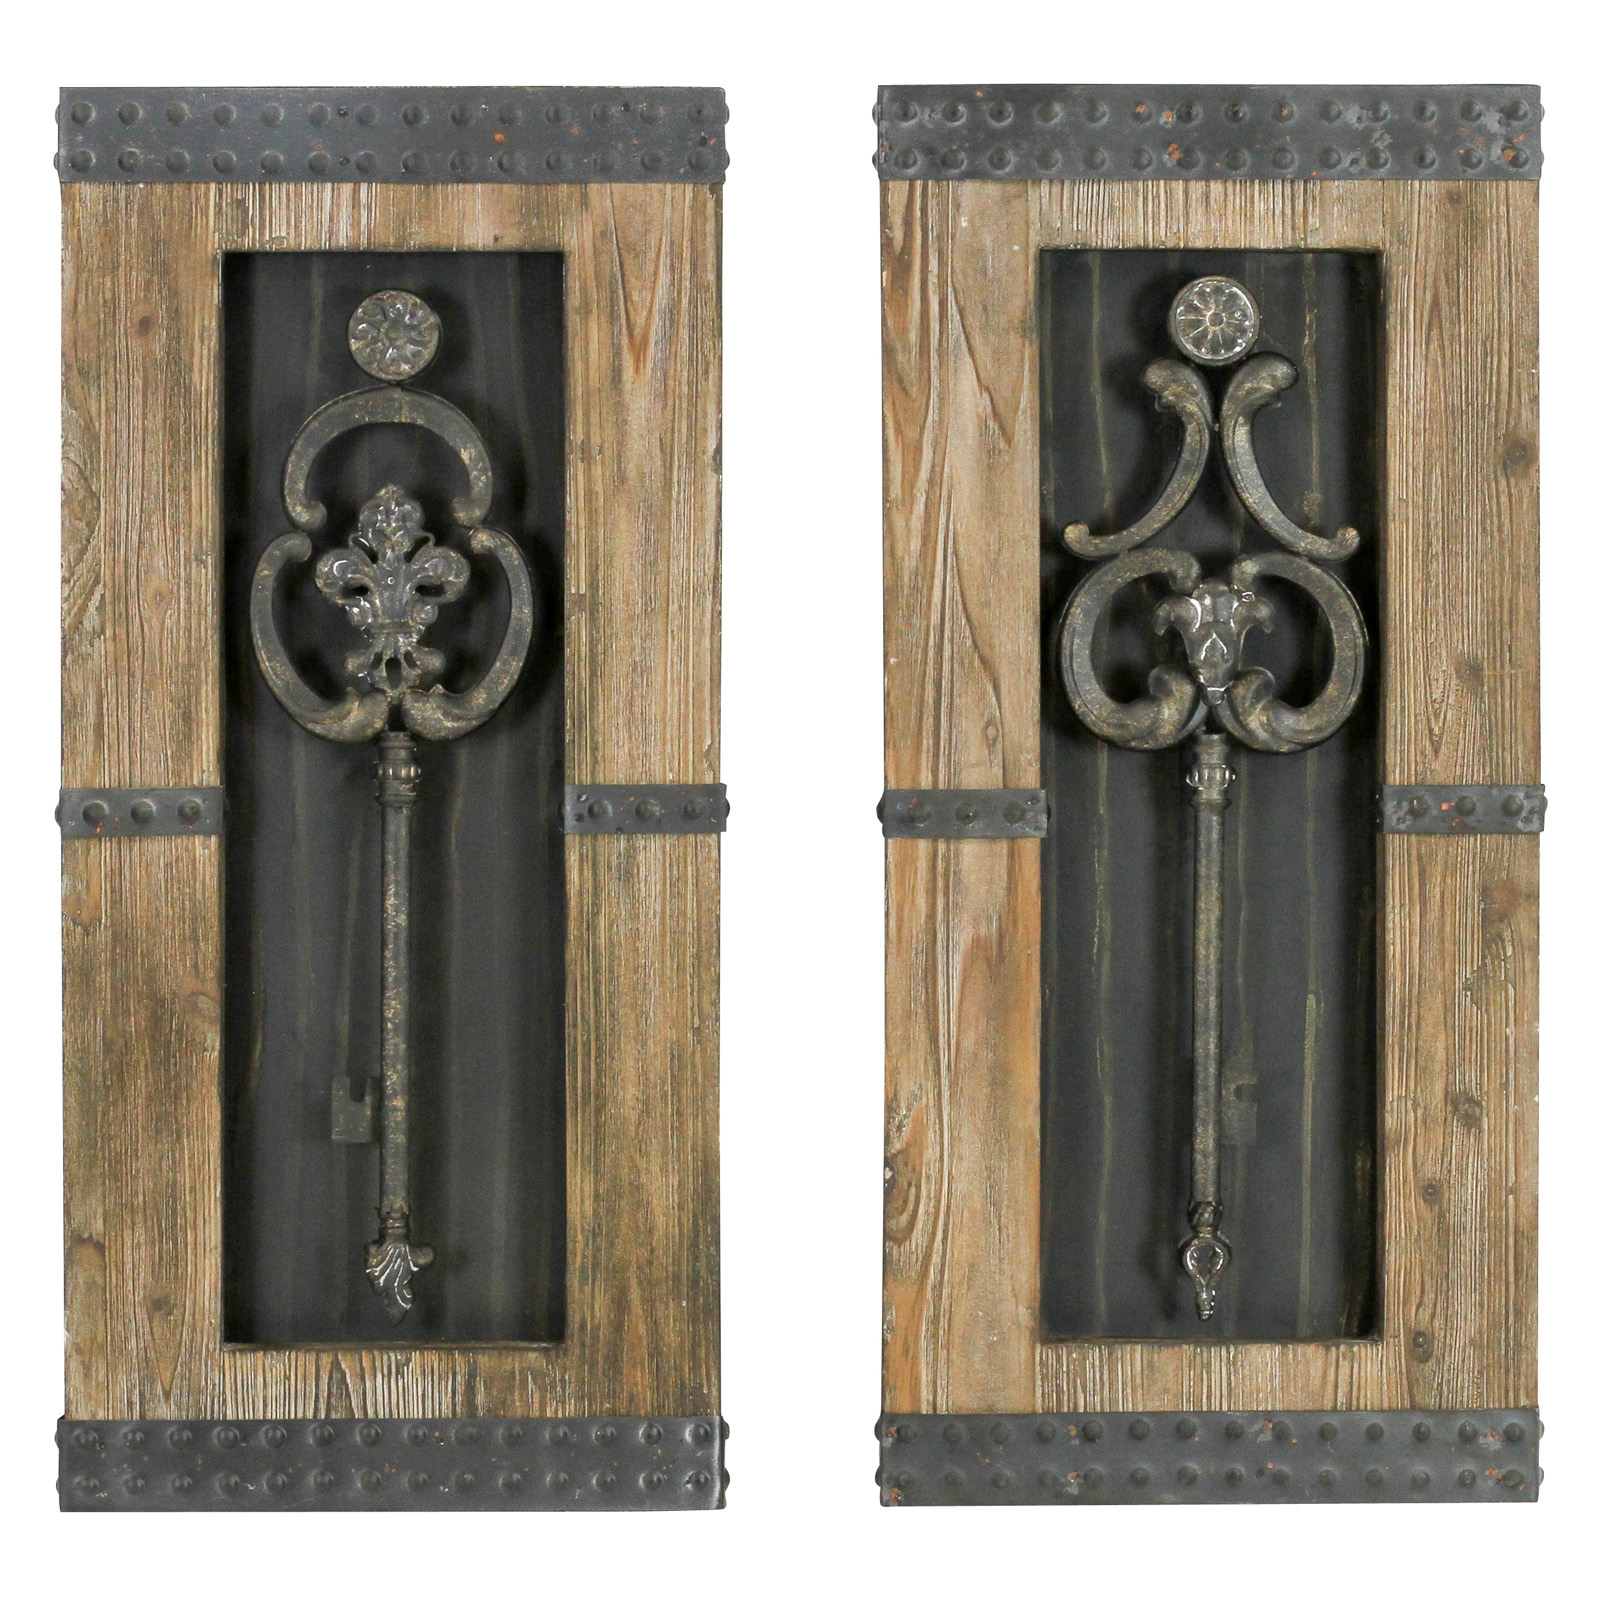 Aspire home accents antique key wood wall decor set of 2 14w x 30h in ea hayneedle